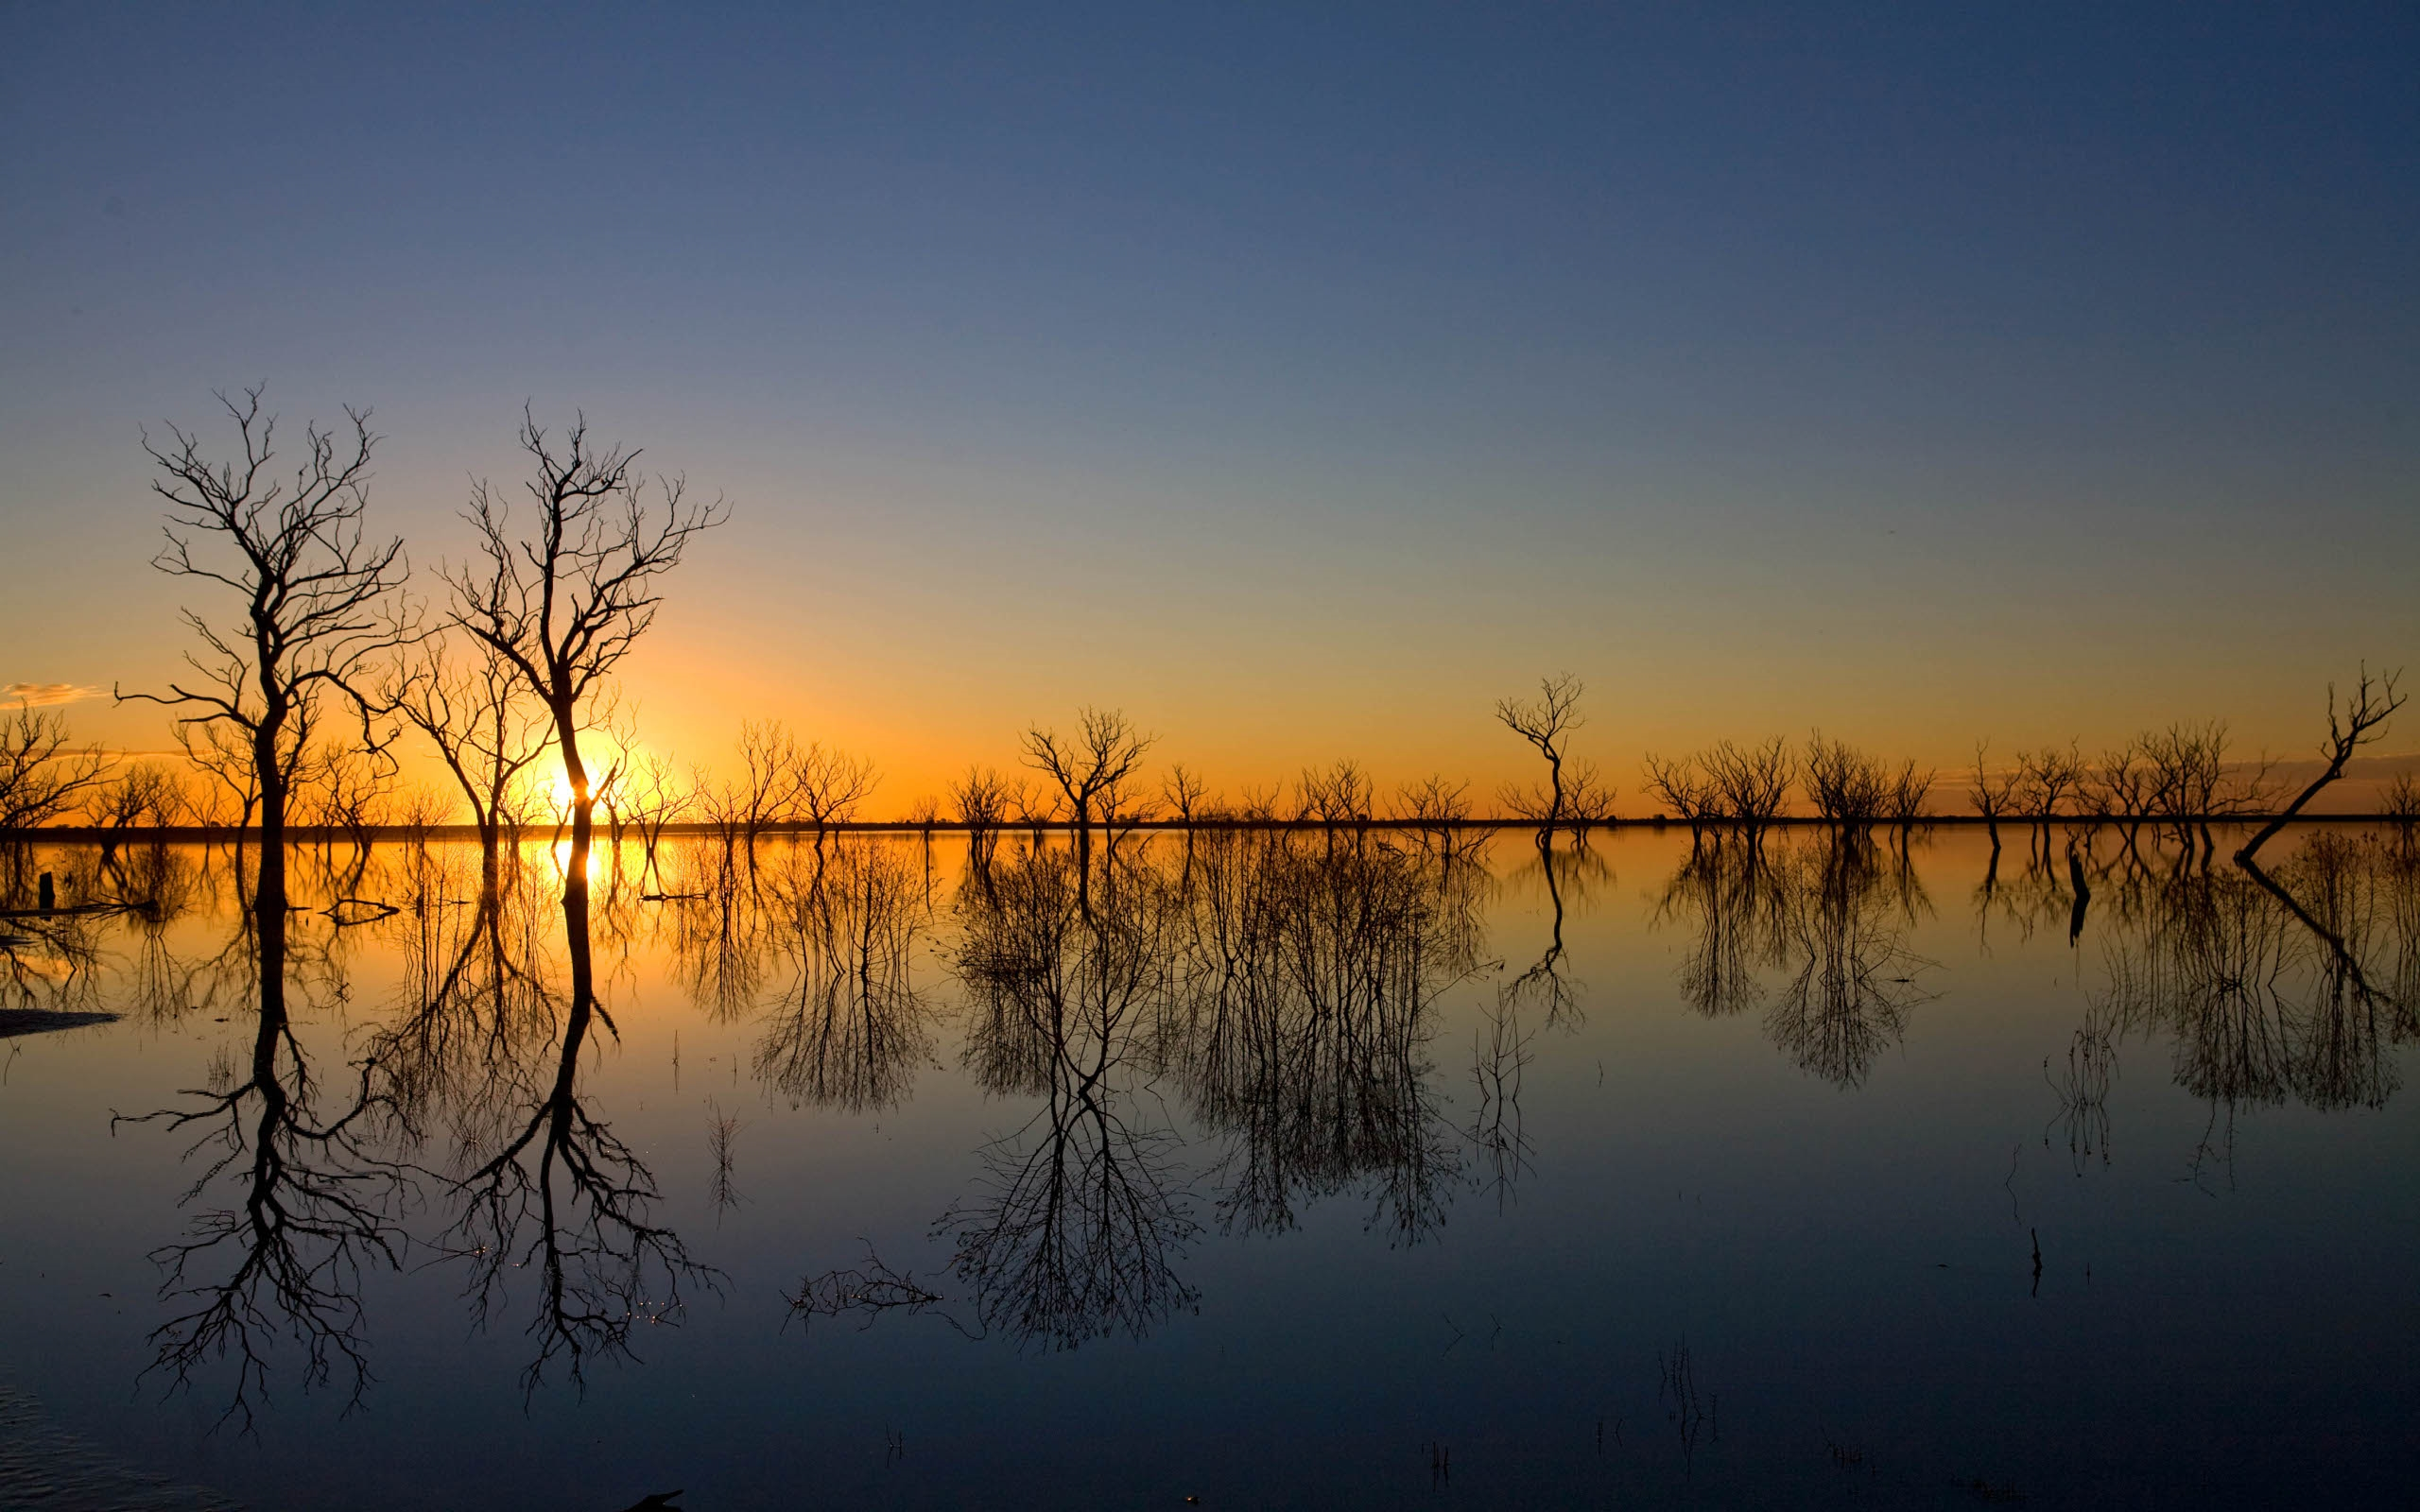 Inspriational Quotes Wallpaper For Mac Sunset Horizon Trees In Water 90870 Wallpapers13 Com